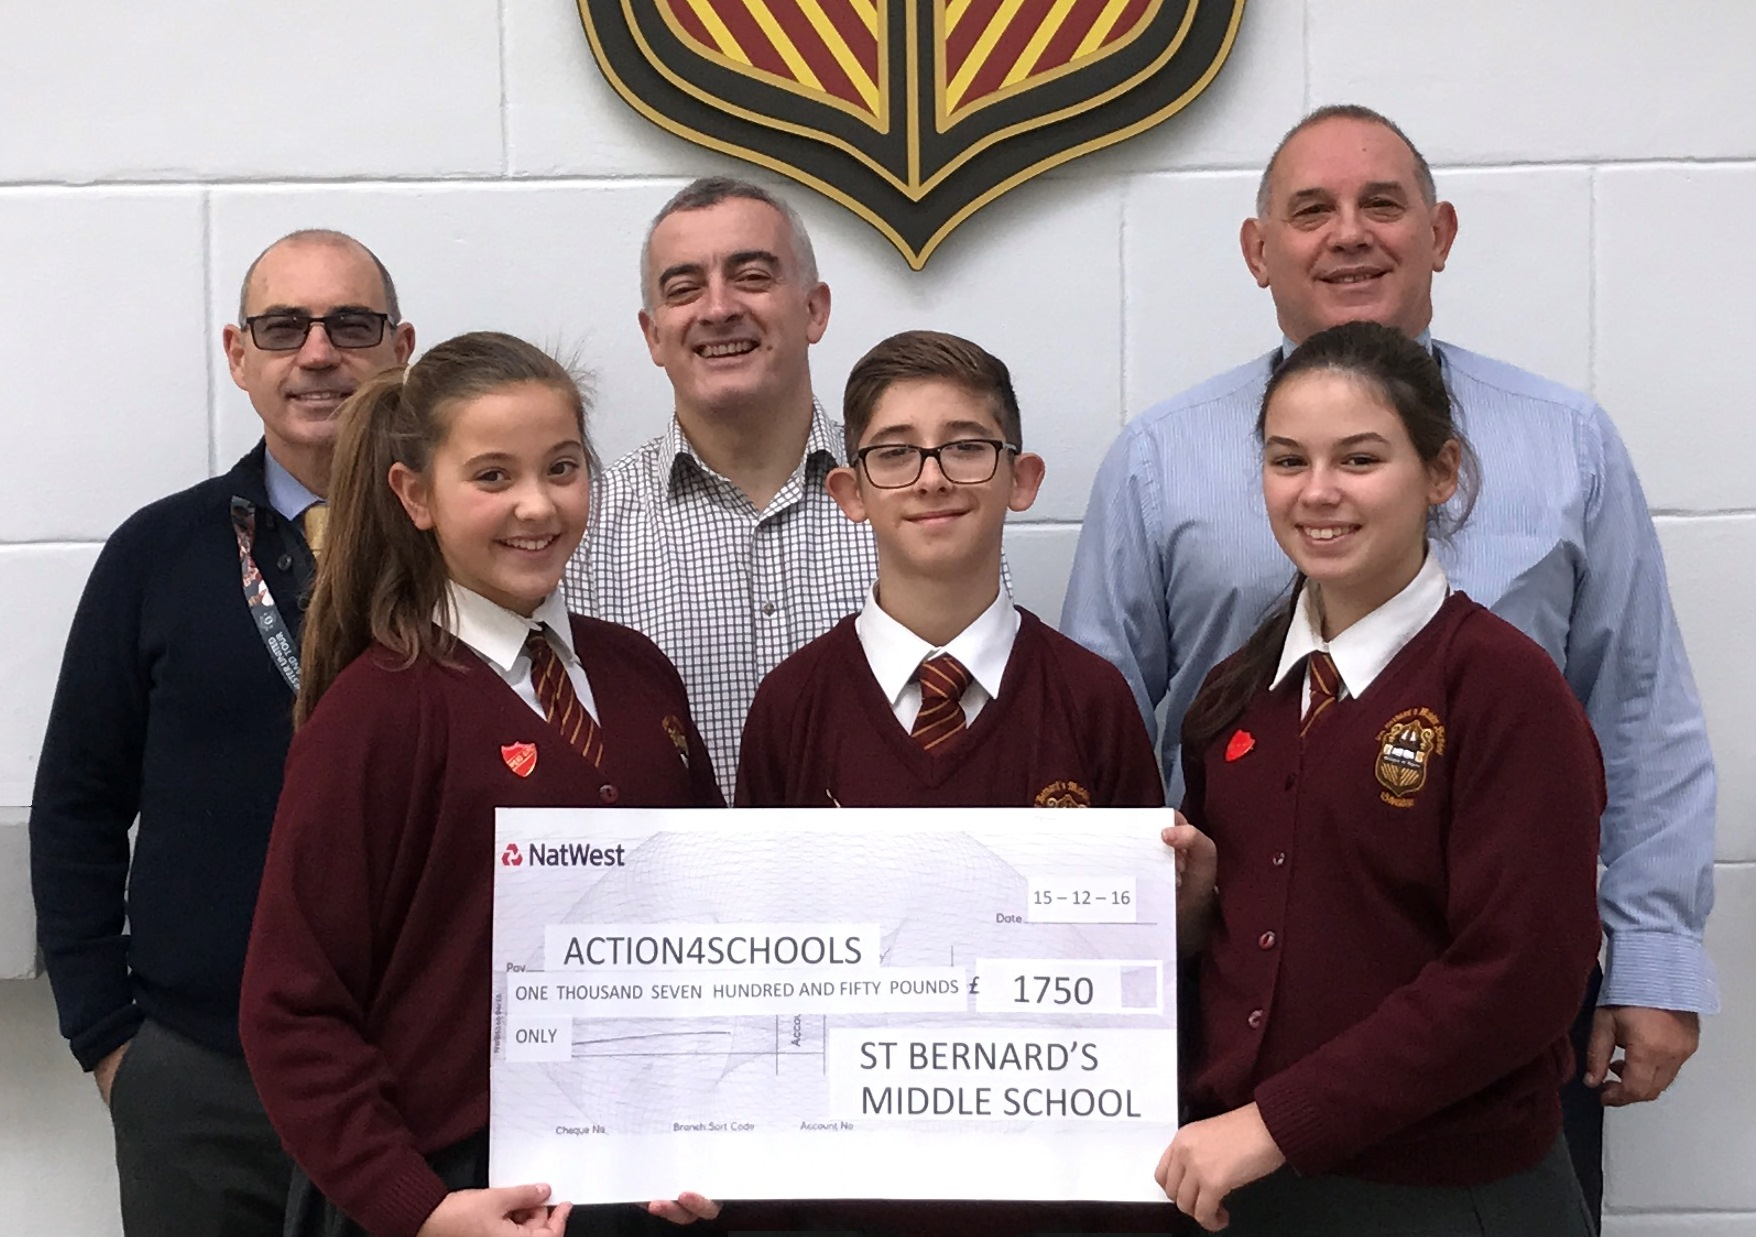 December 2016 - St Bernard's Middle School donated £1,750 towards the cost of a new water well